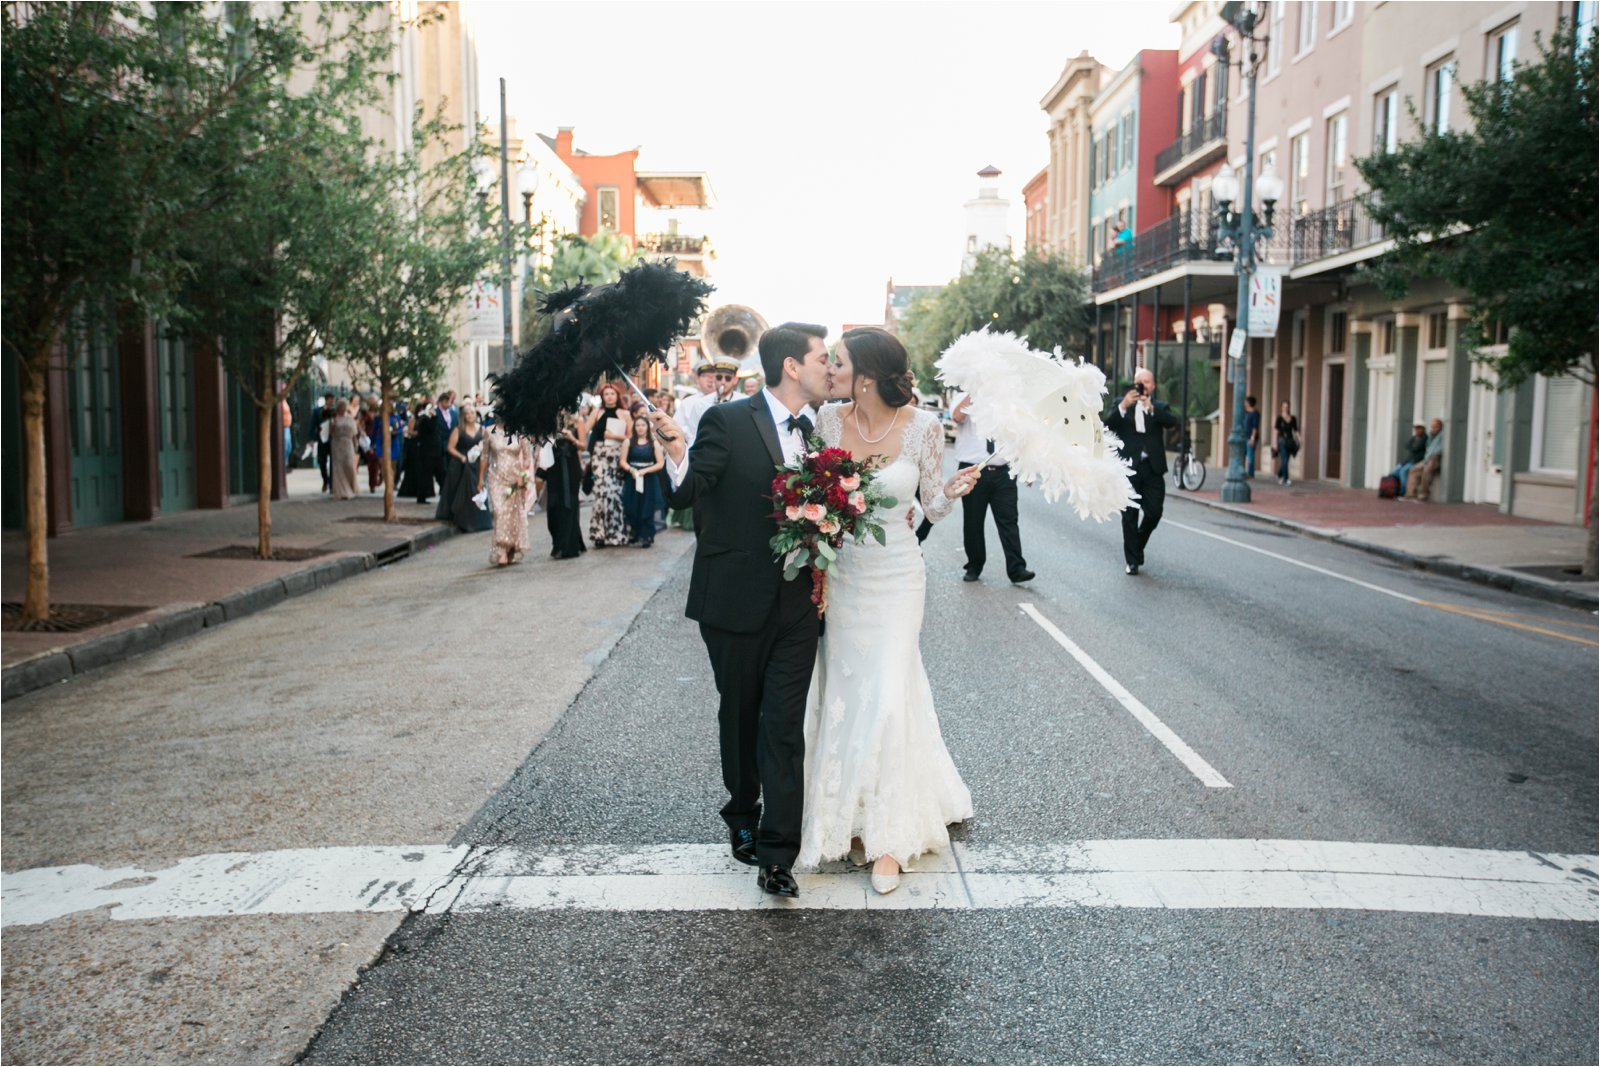 045_New Orleans wedding photographer.jpg